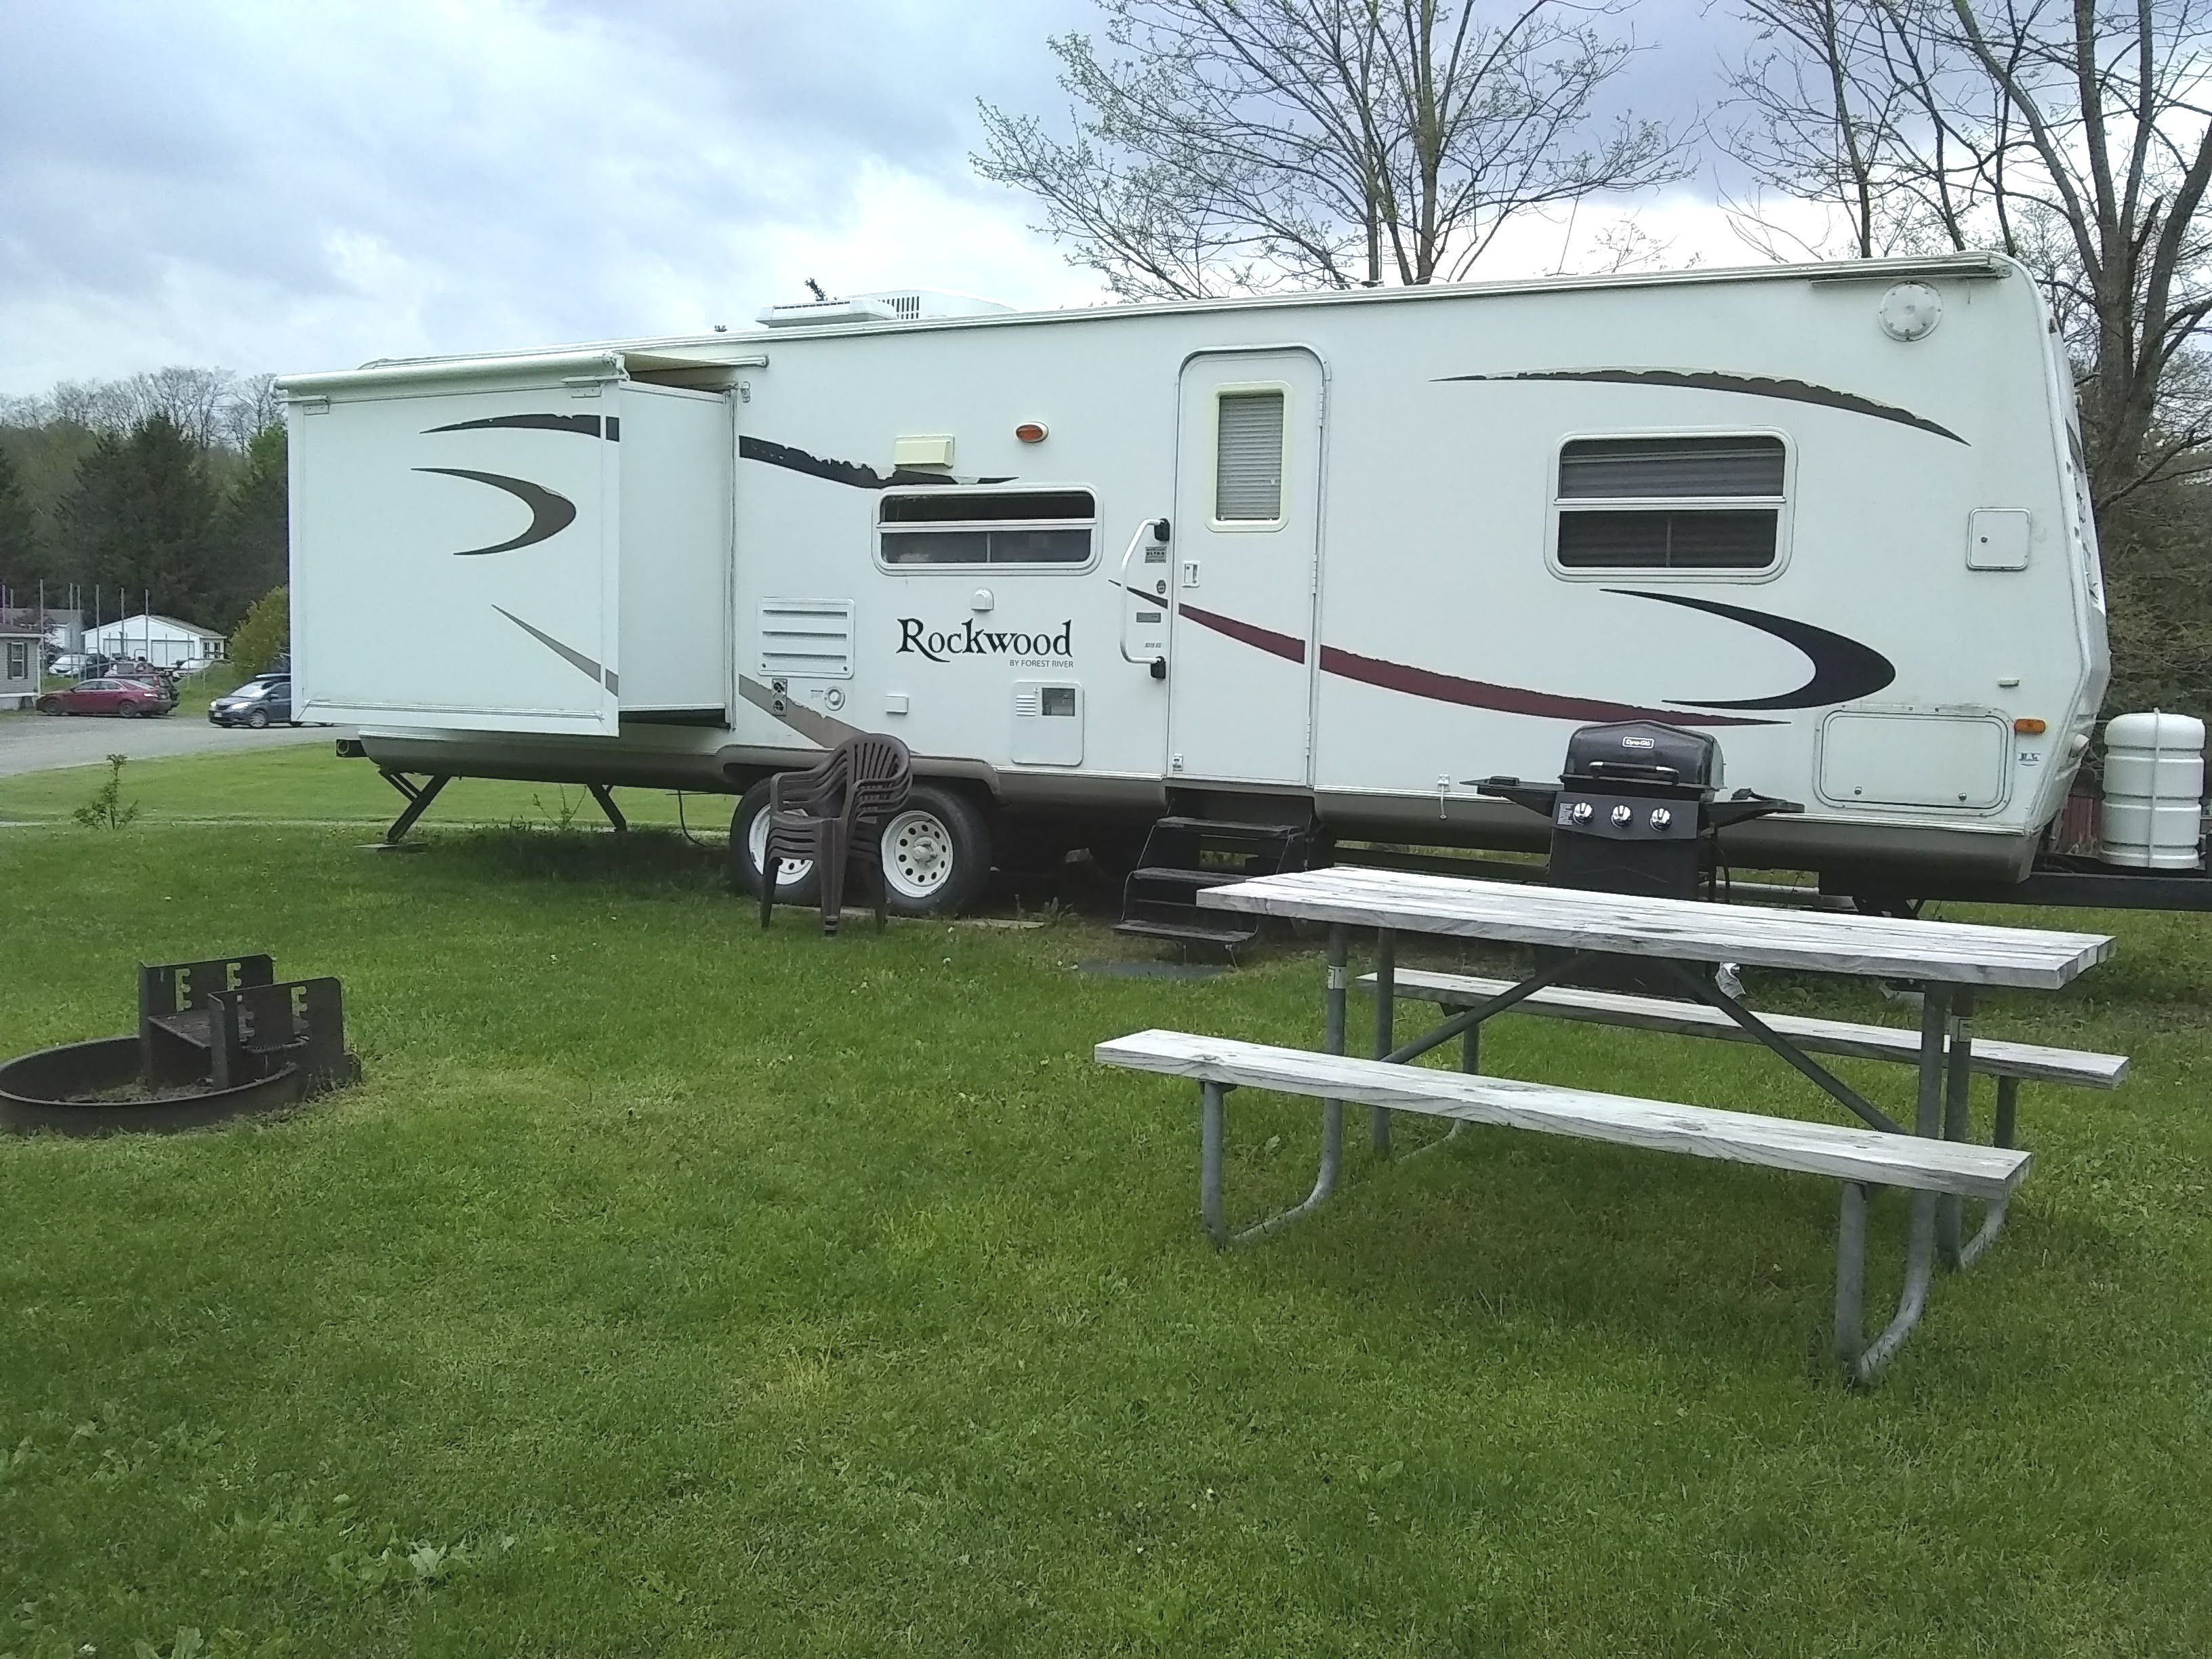 34' Rockwood Rental Trailer